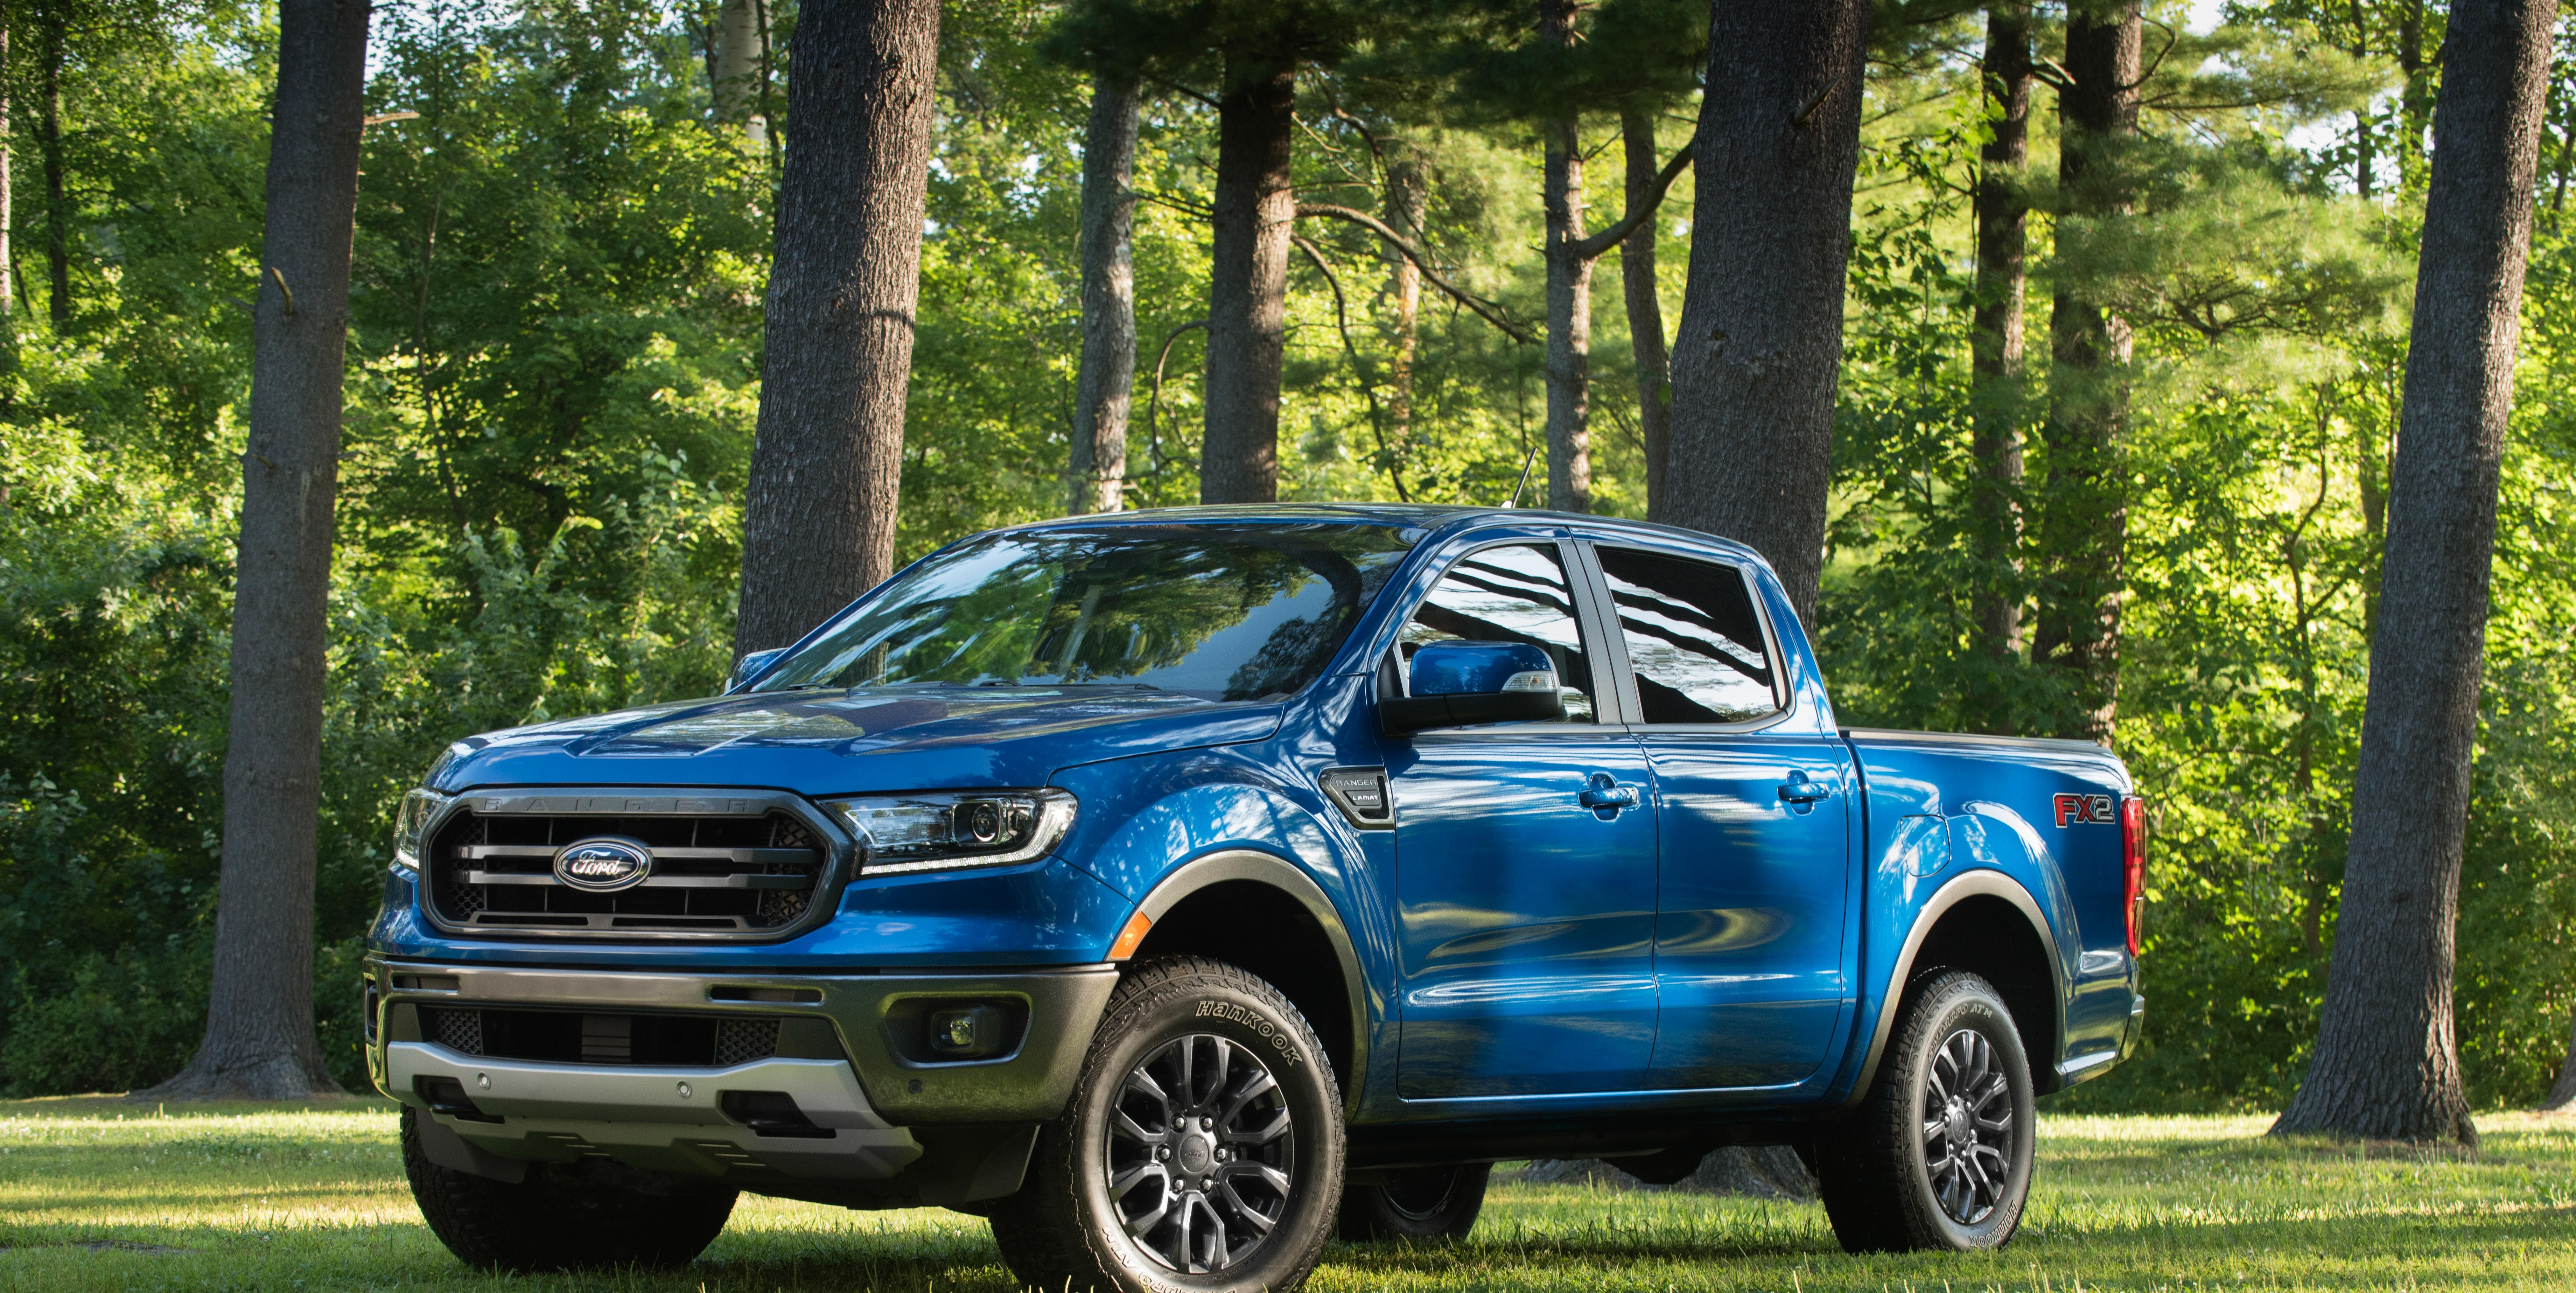 Ford Performance Add-On Boosts Ranger Output by 45 HP